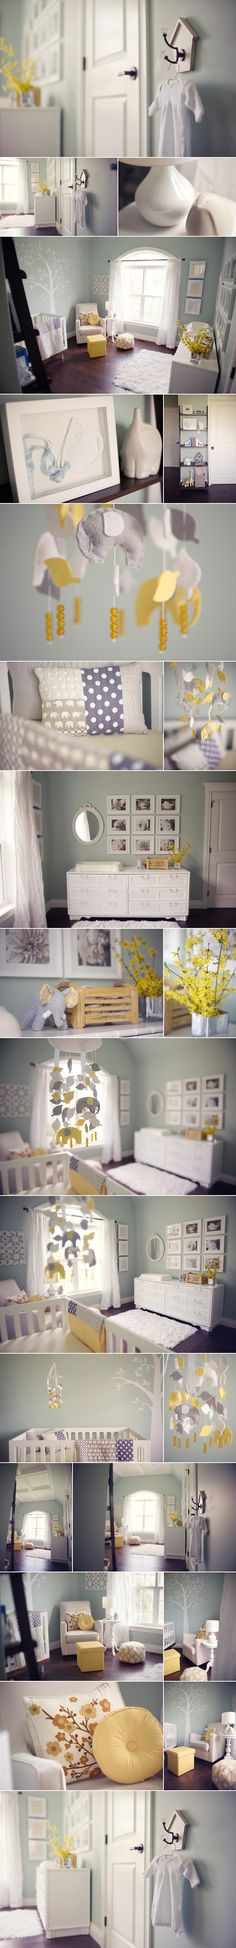 awesome white grey and yellow elephant nursery